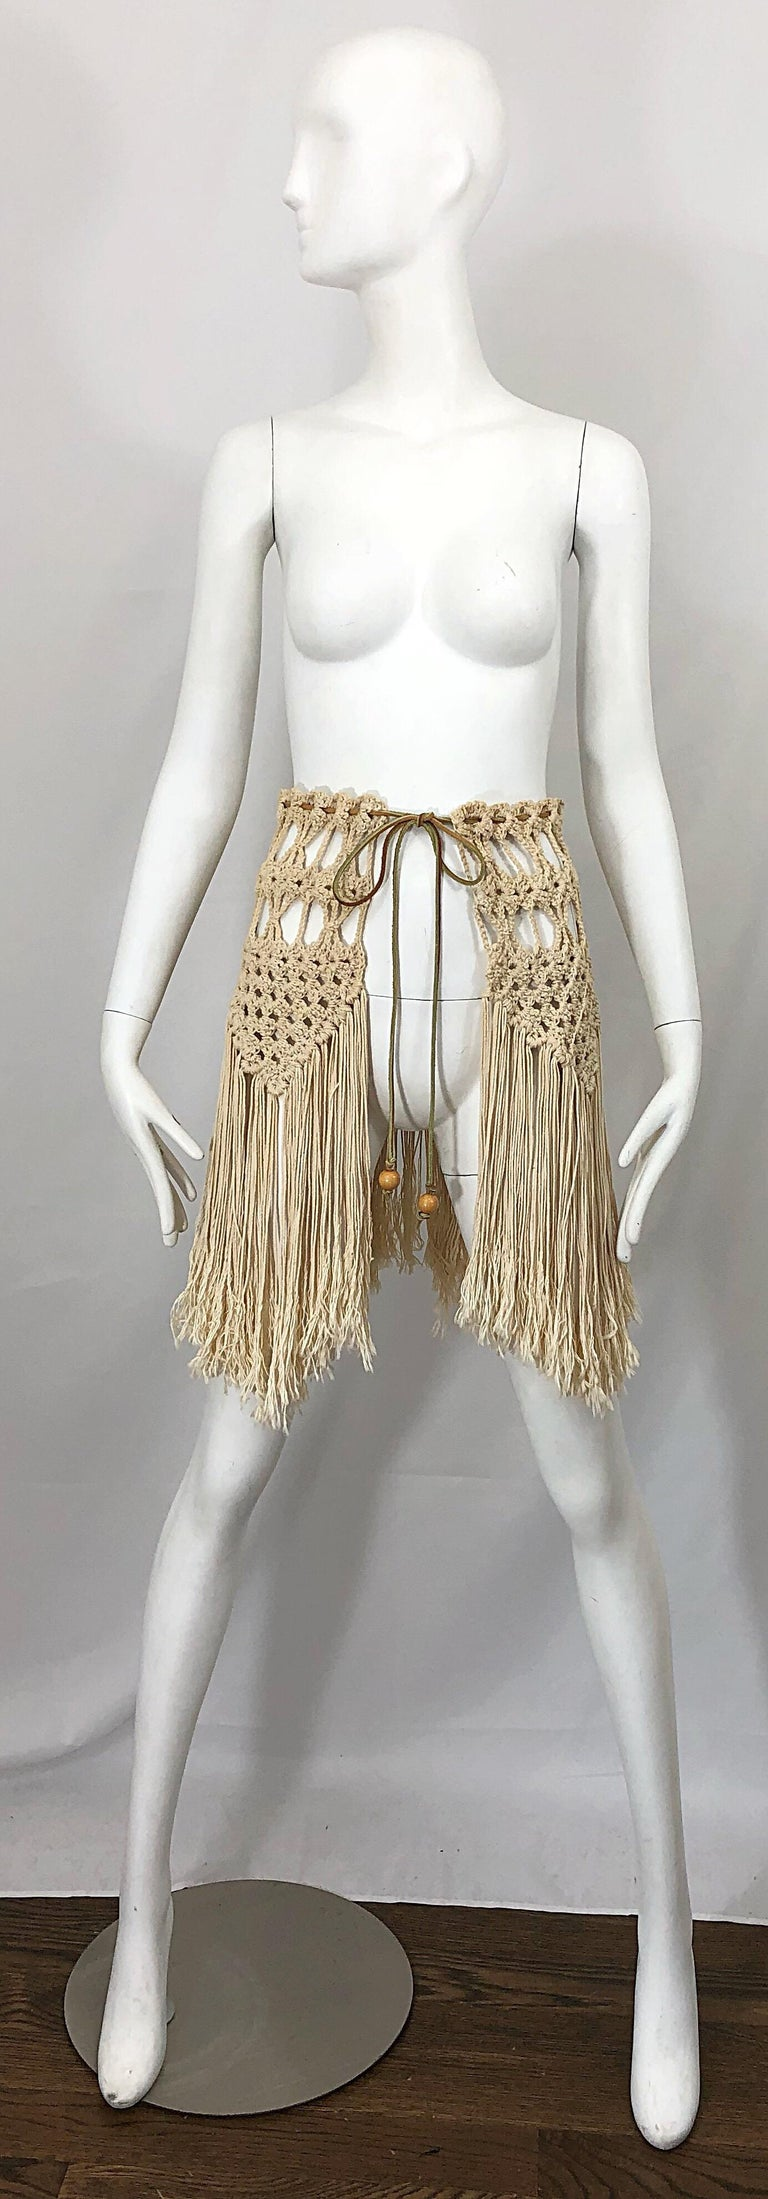 Amazing 1970s crochet khaki and brown boho crochet belt or capelet! Features fringe that dangles from the cotton crochet. Brown leather suede cord at waist with two beads at each end. Can be worn as a belt or capelet. Both ways are equally as chic.